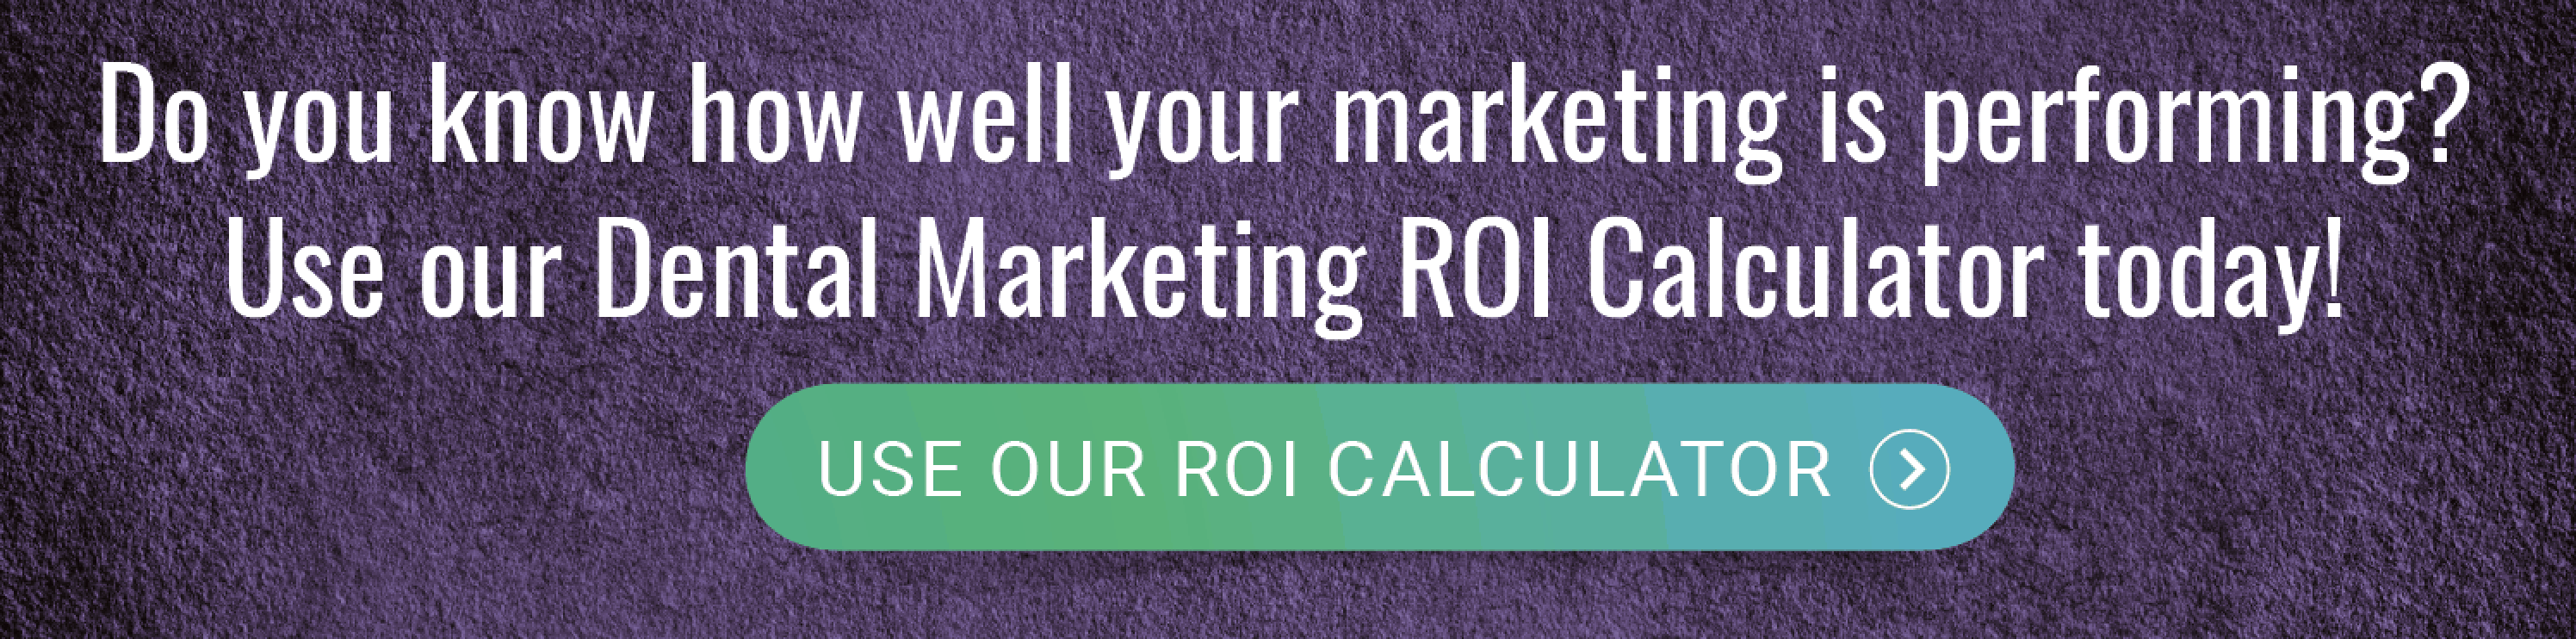 use our roi calculator